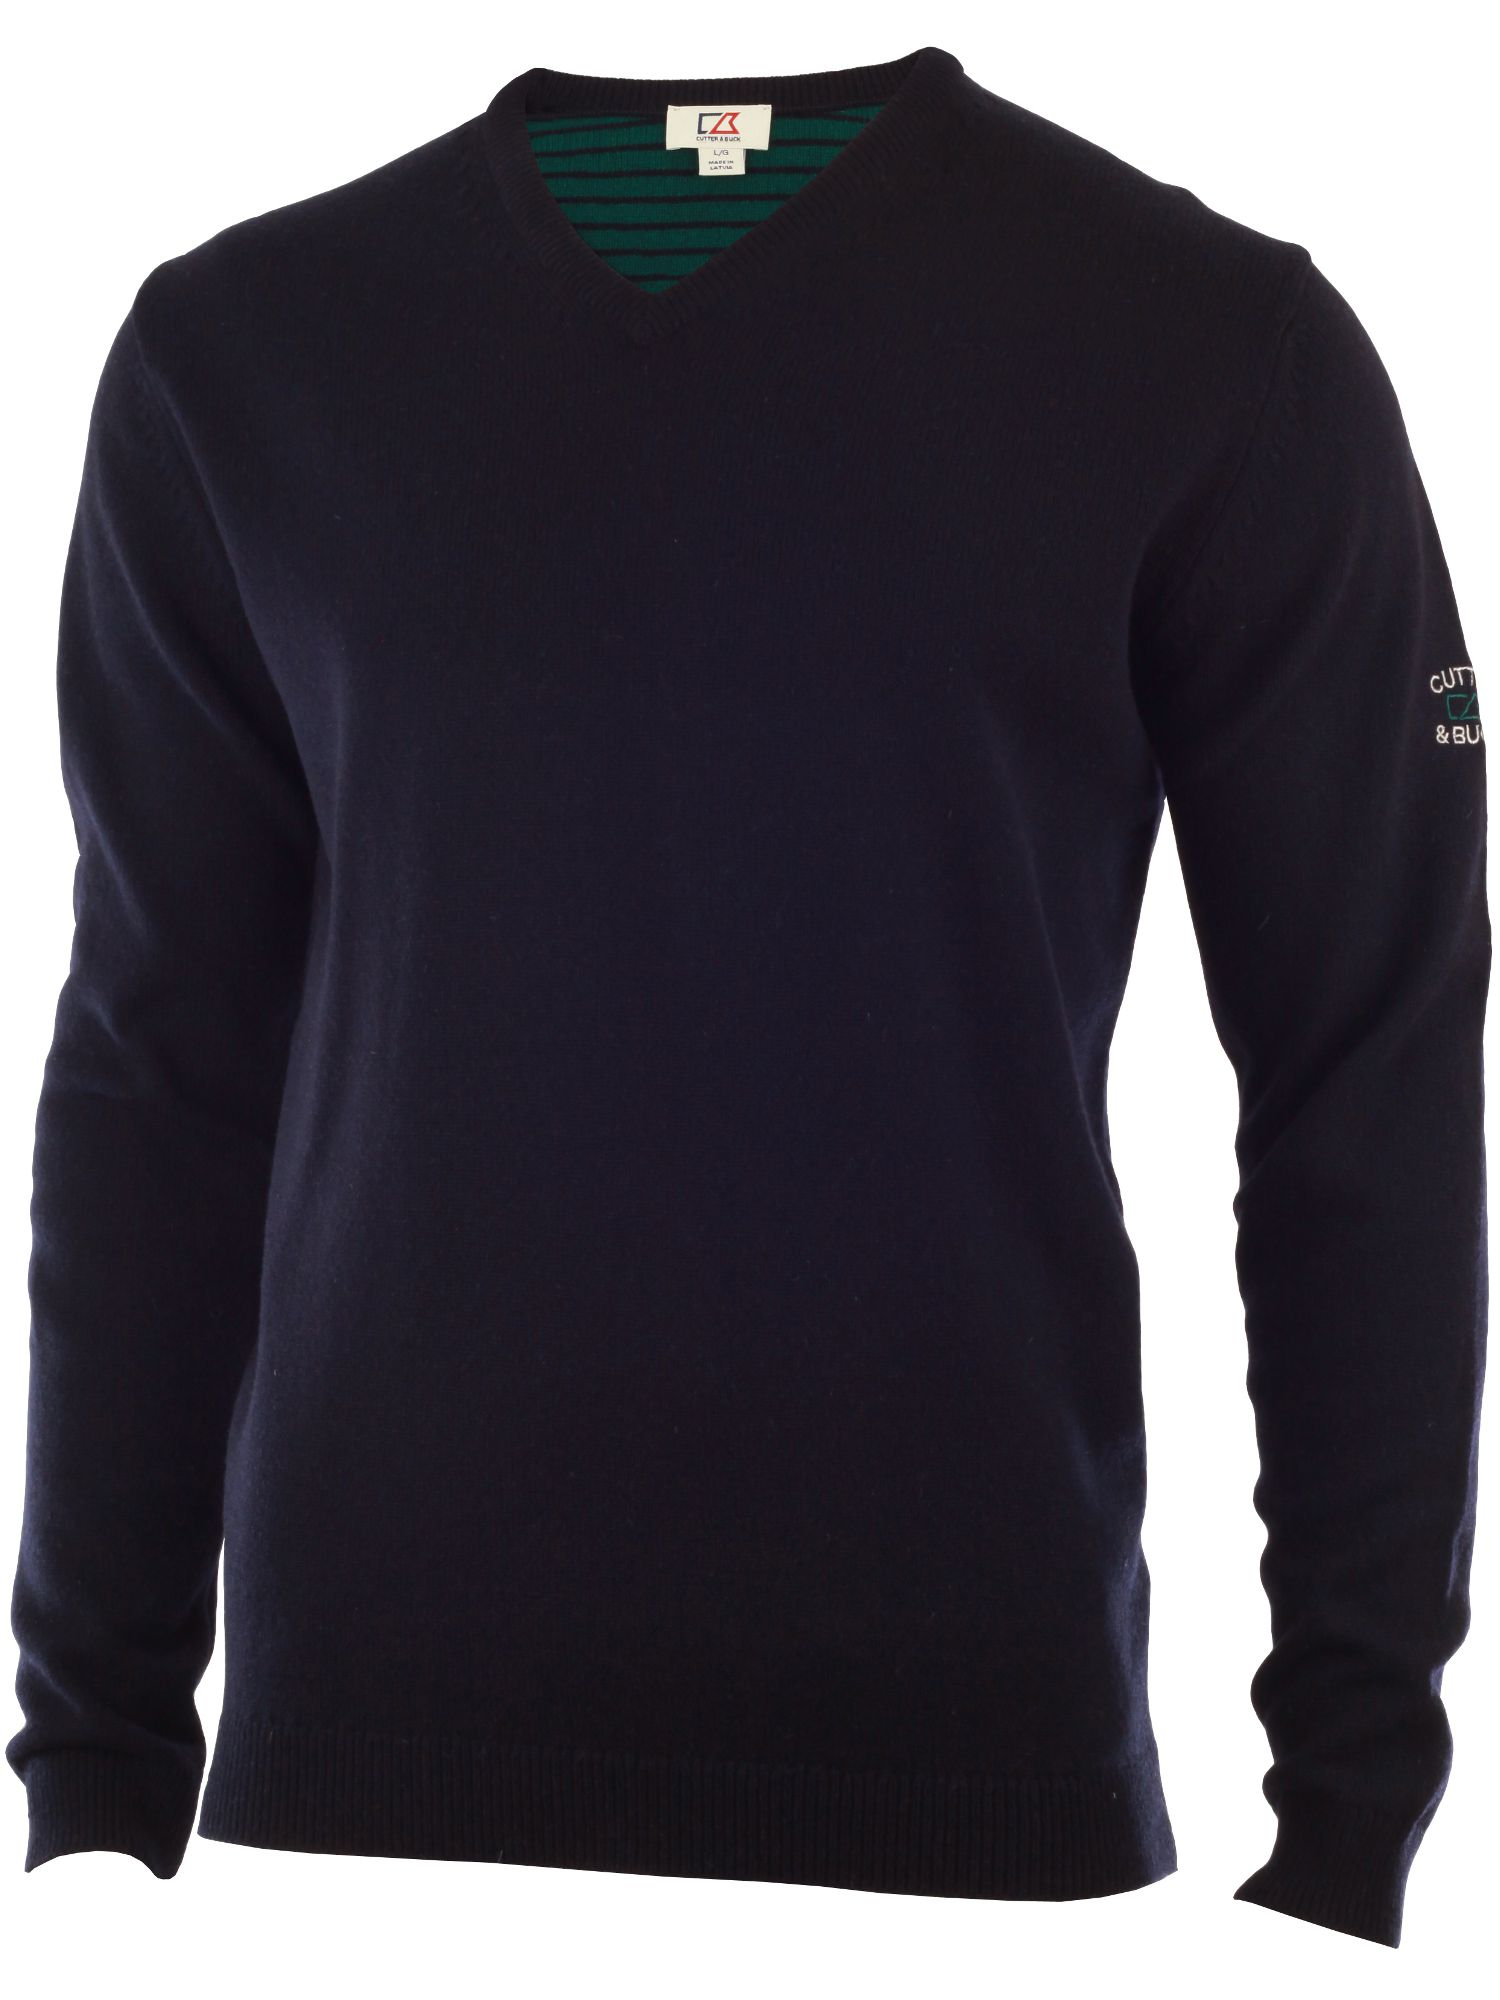 Men's Cutter and Buck Lambswool v neck sweater, Navy